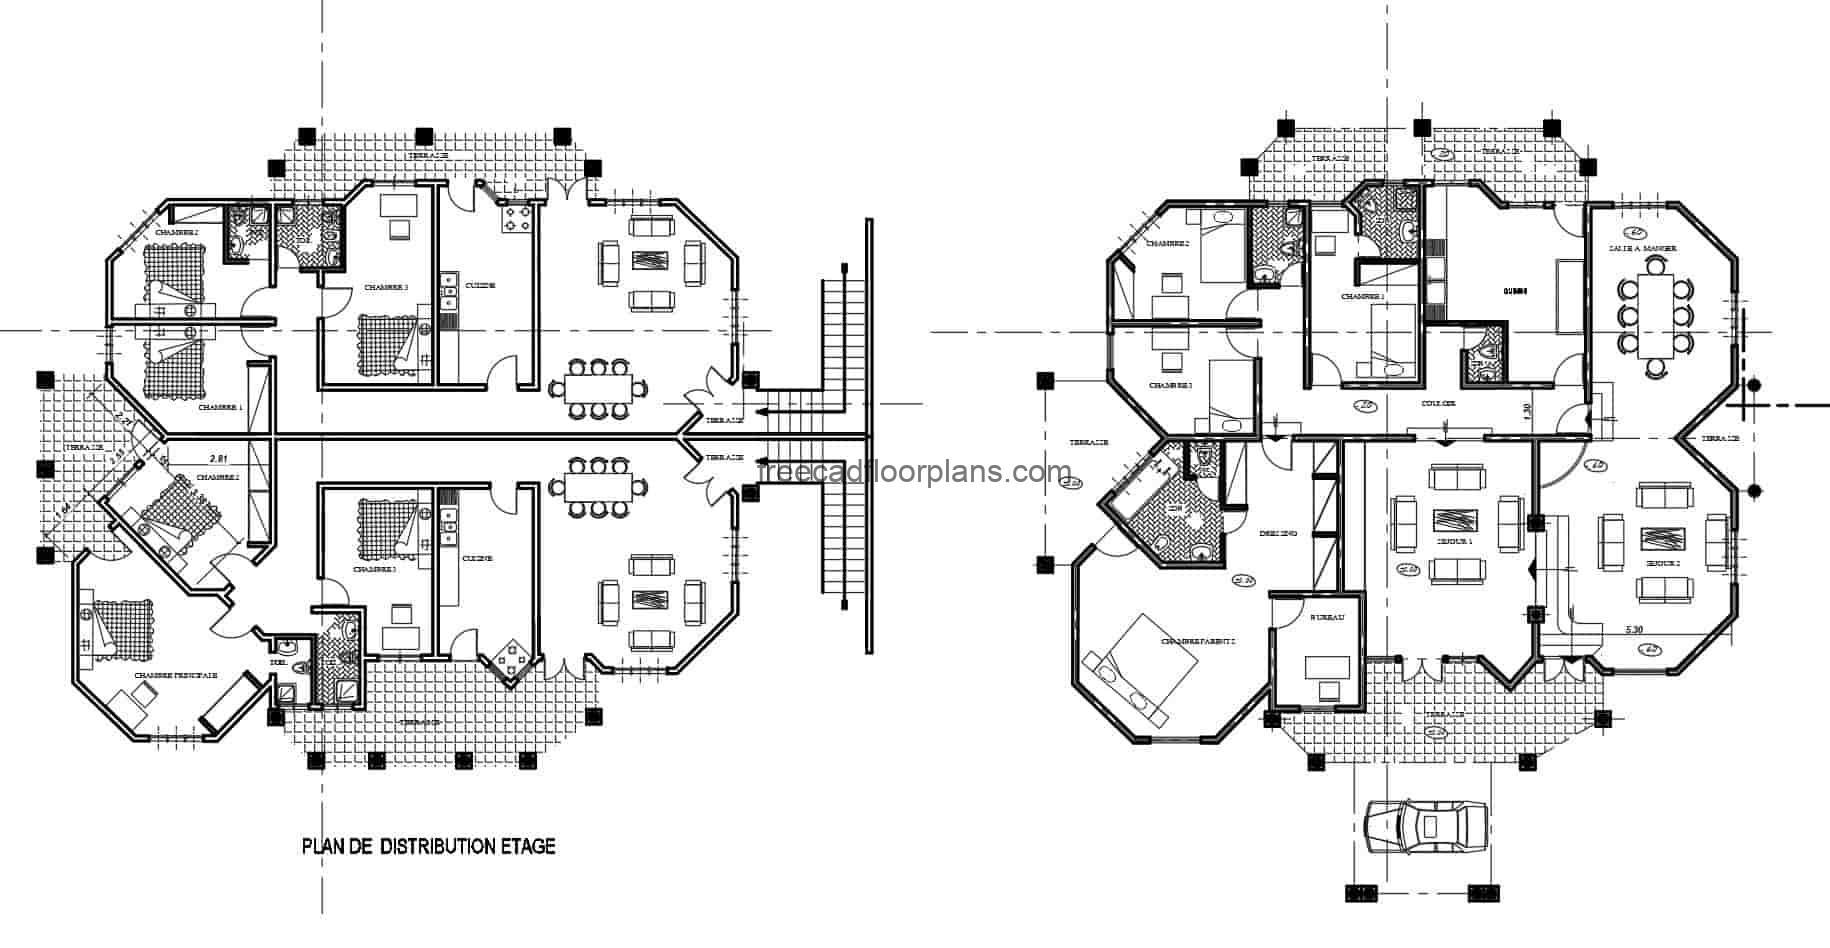 complete plans of big house of two levels with irregular shape, for free download in DWG format